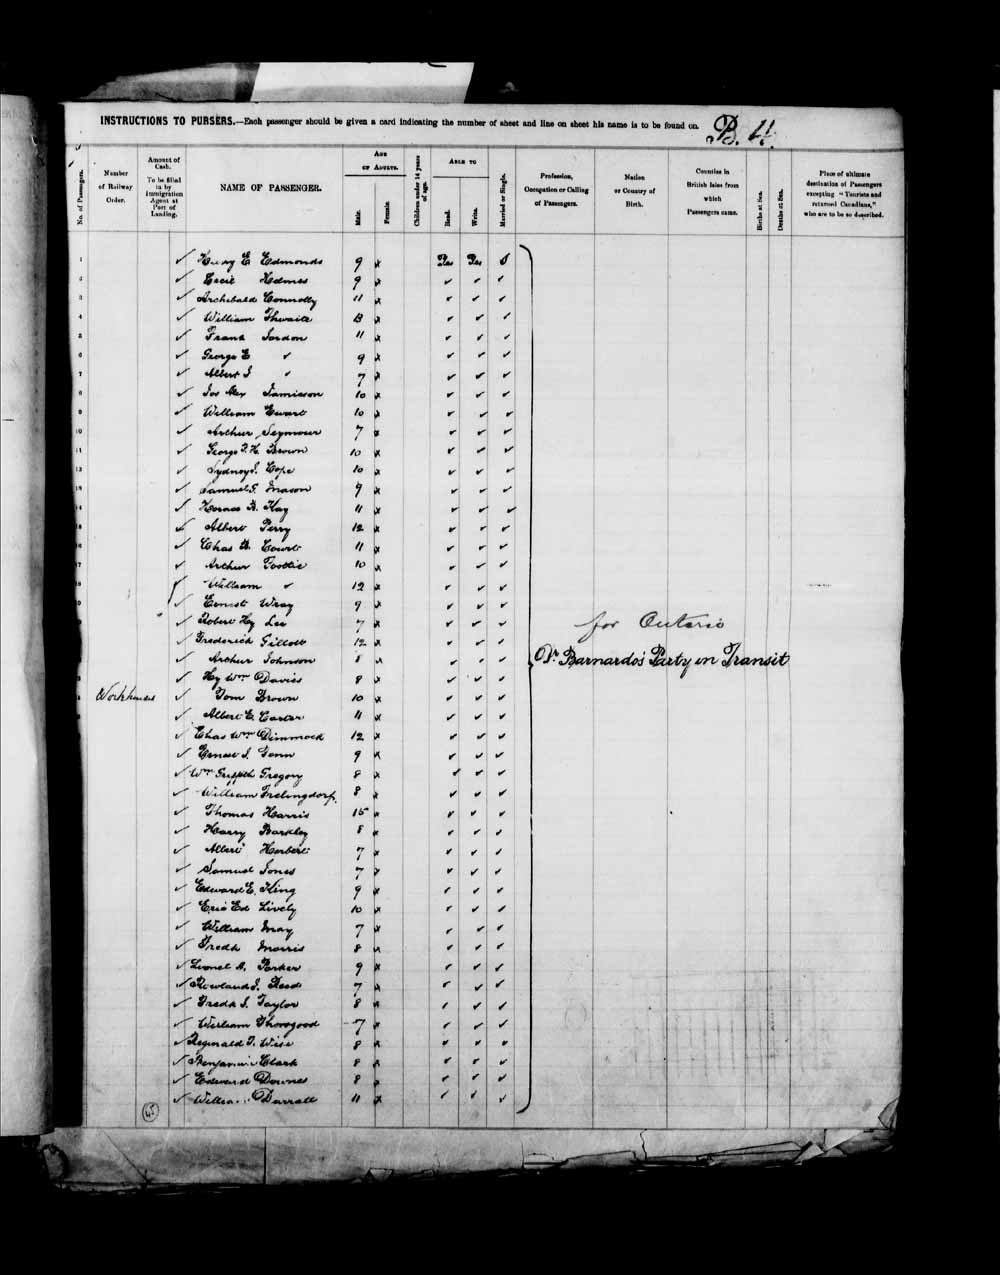 Digitized page of Passenger Lists for Image No.: e003658090